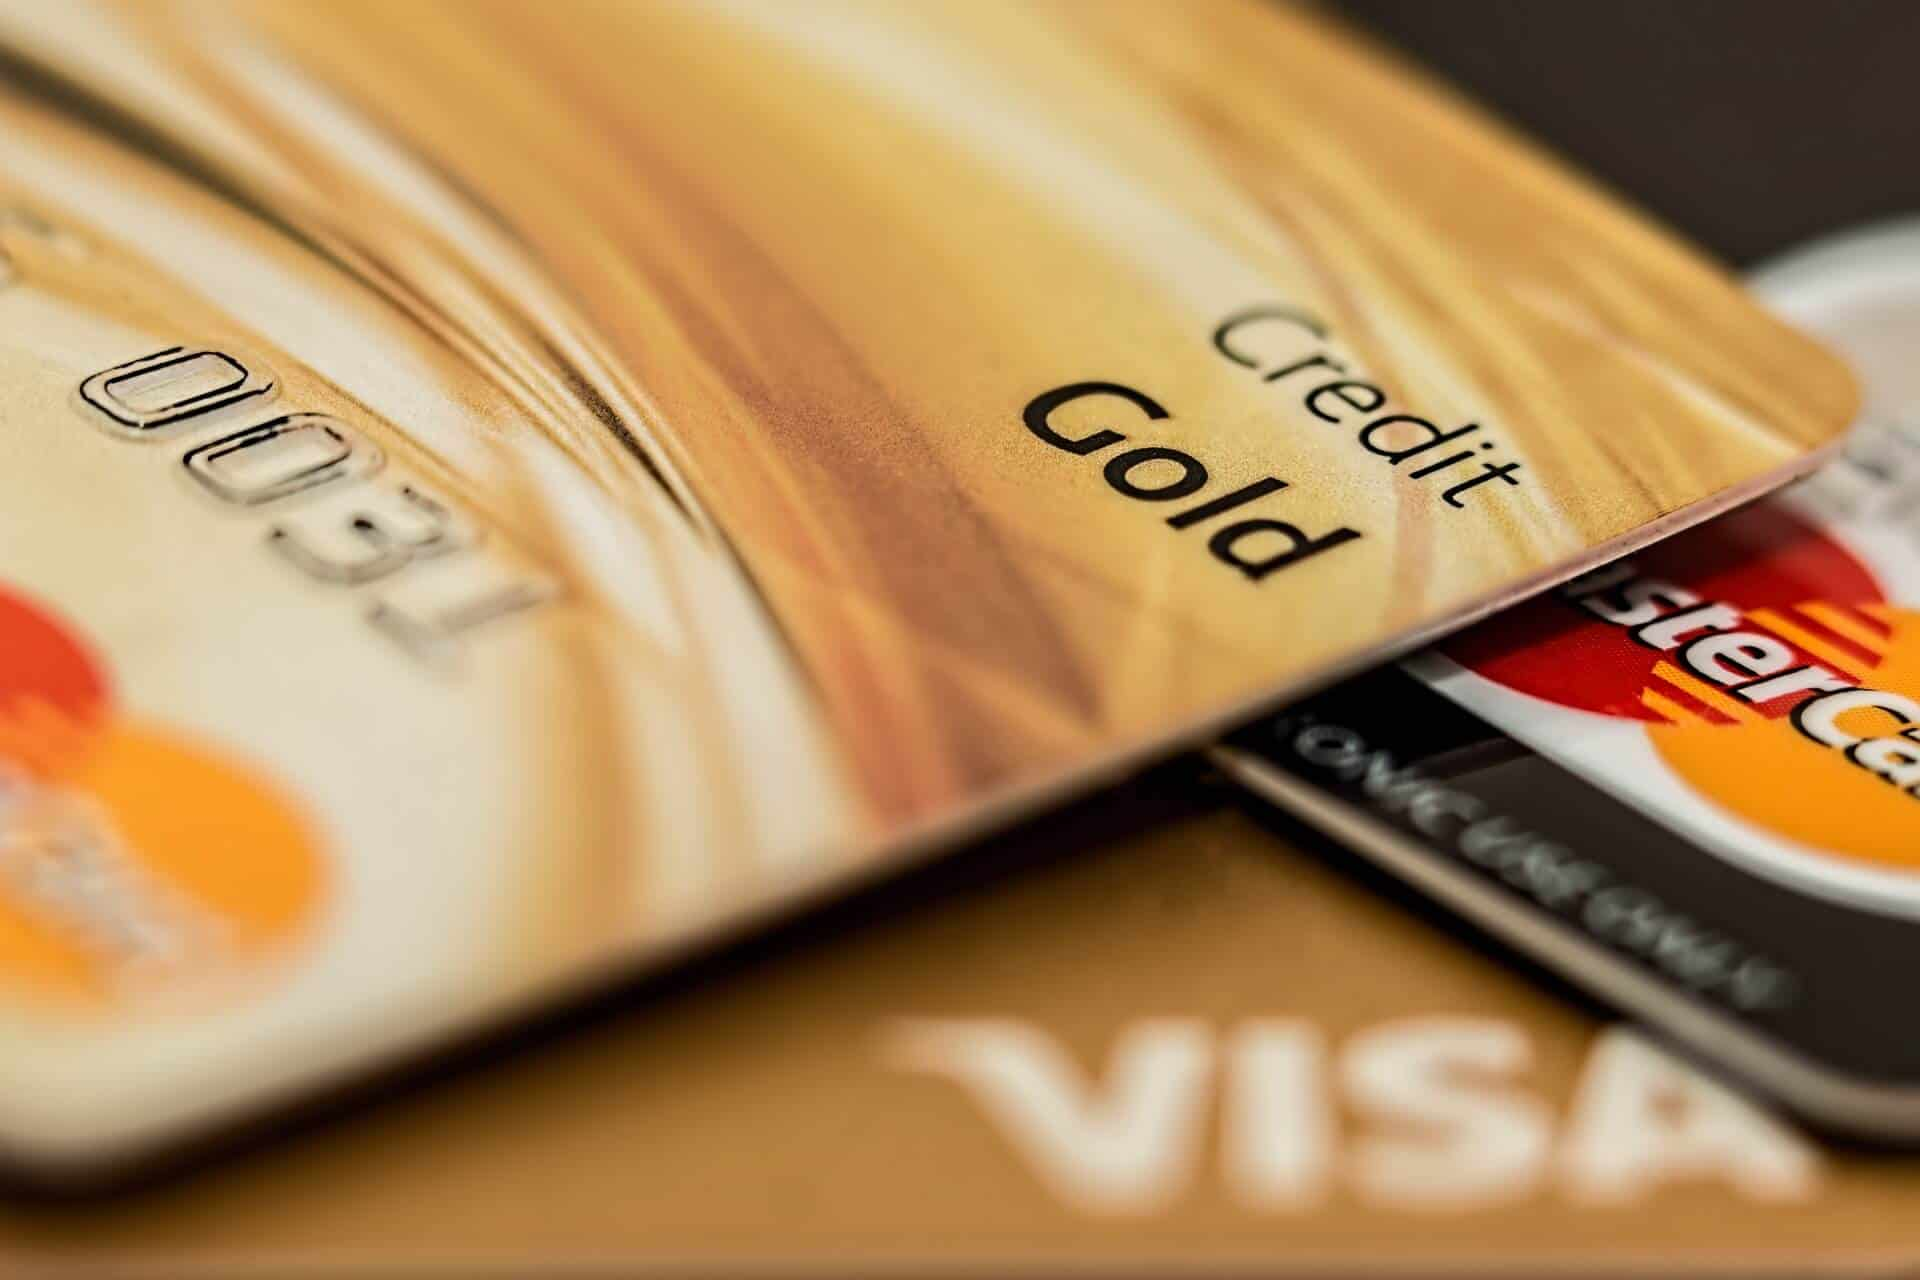 Payment Giant Visa Files Patent for a Digital Currency